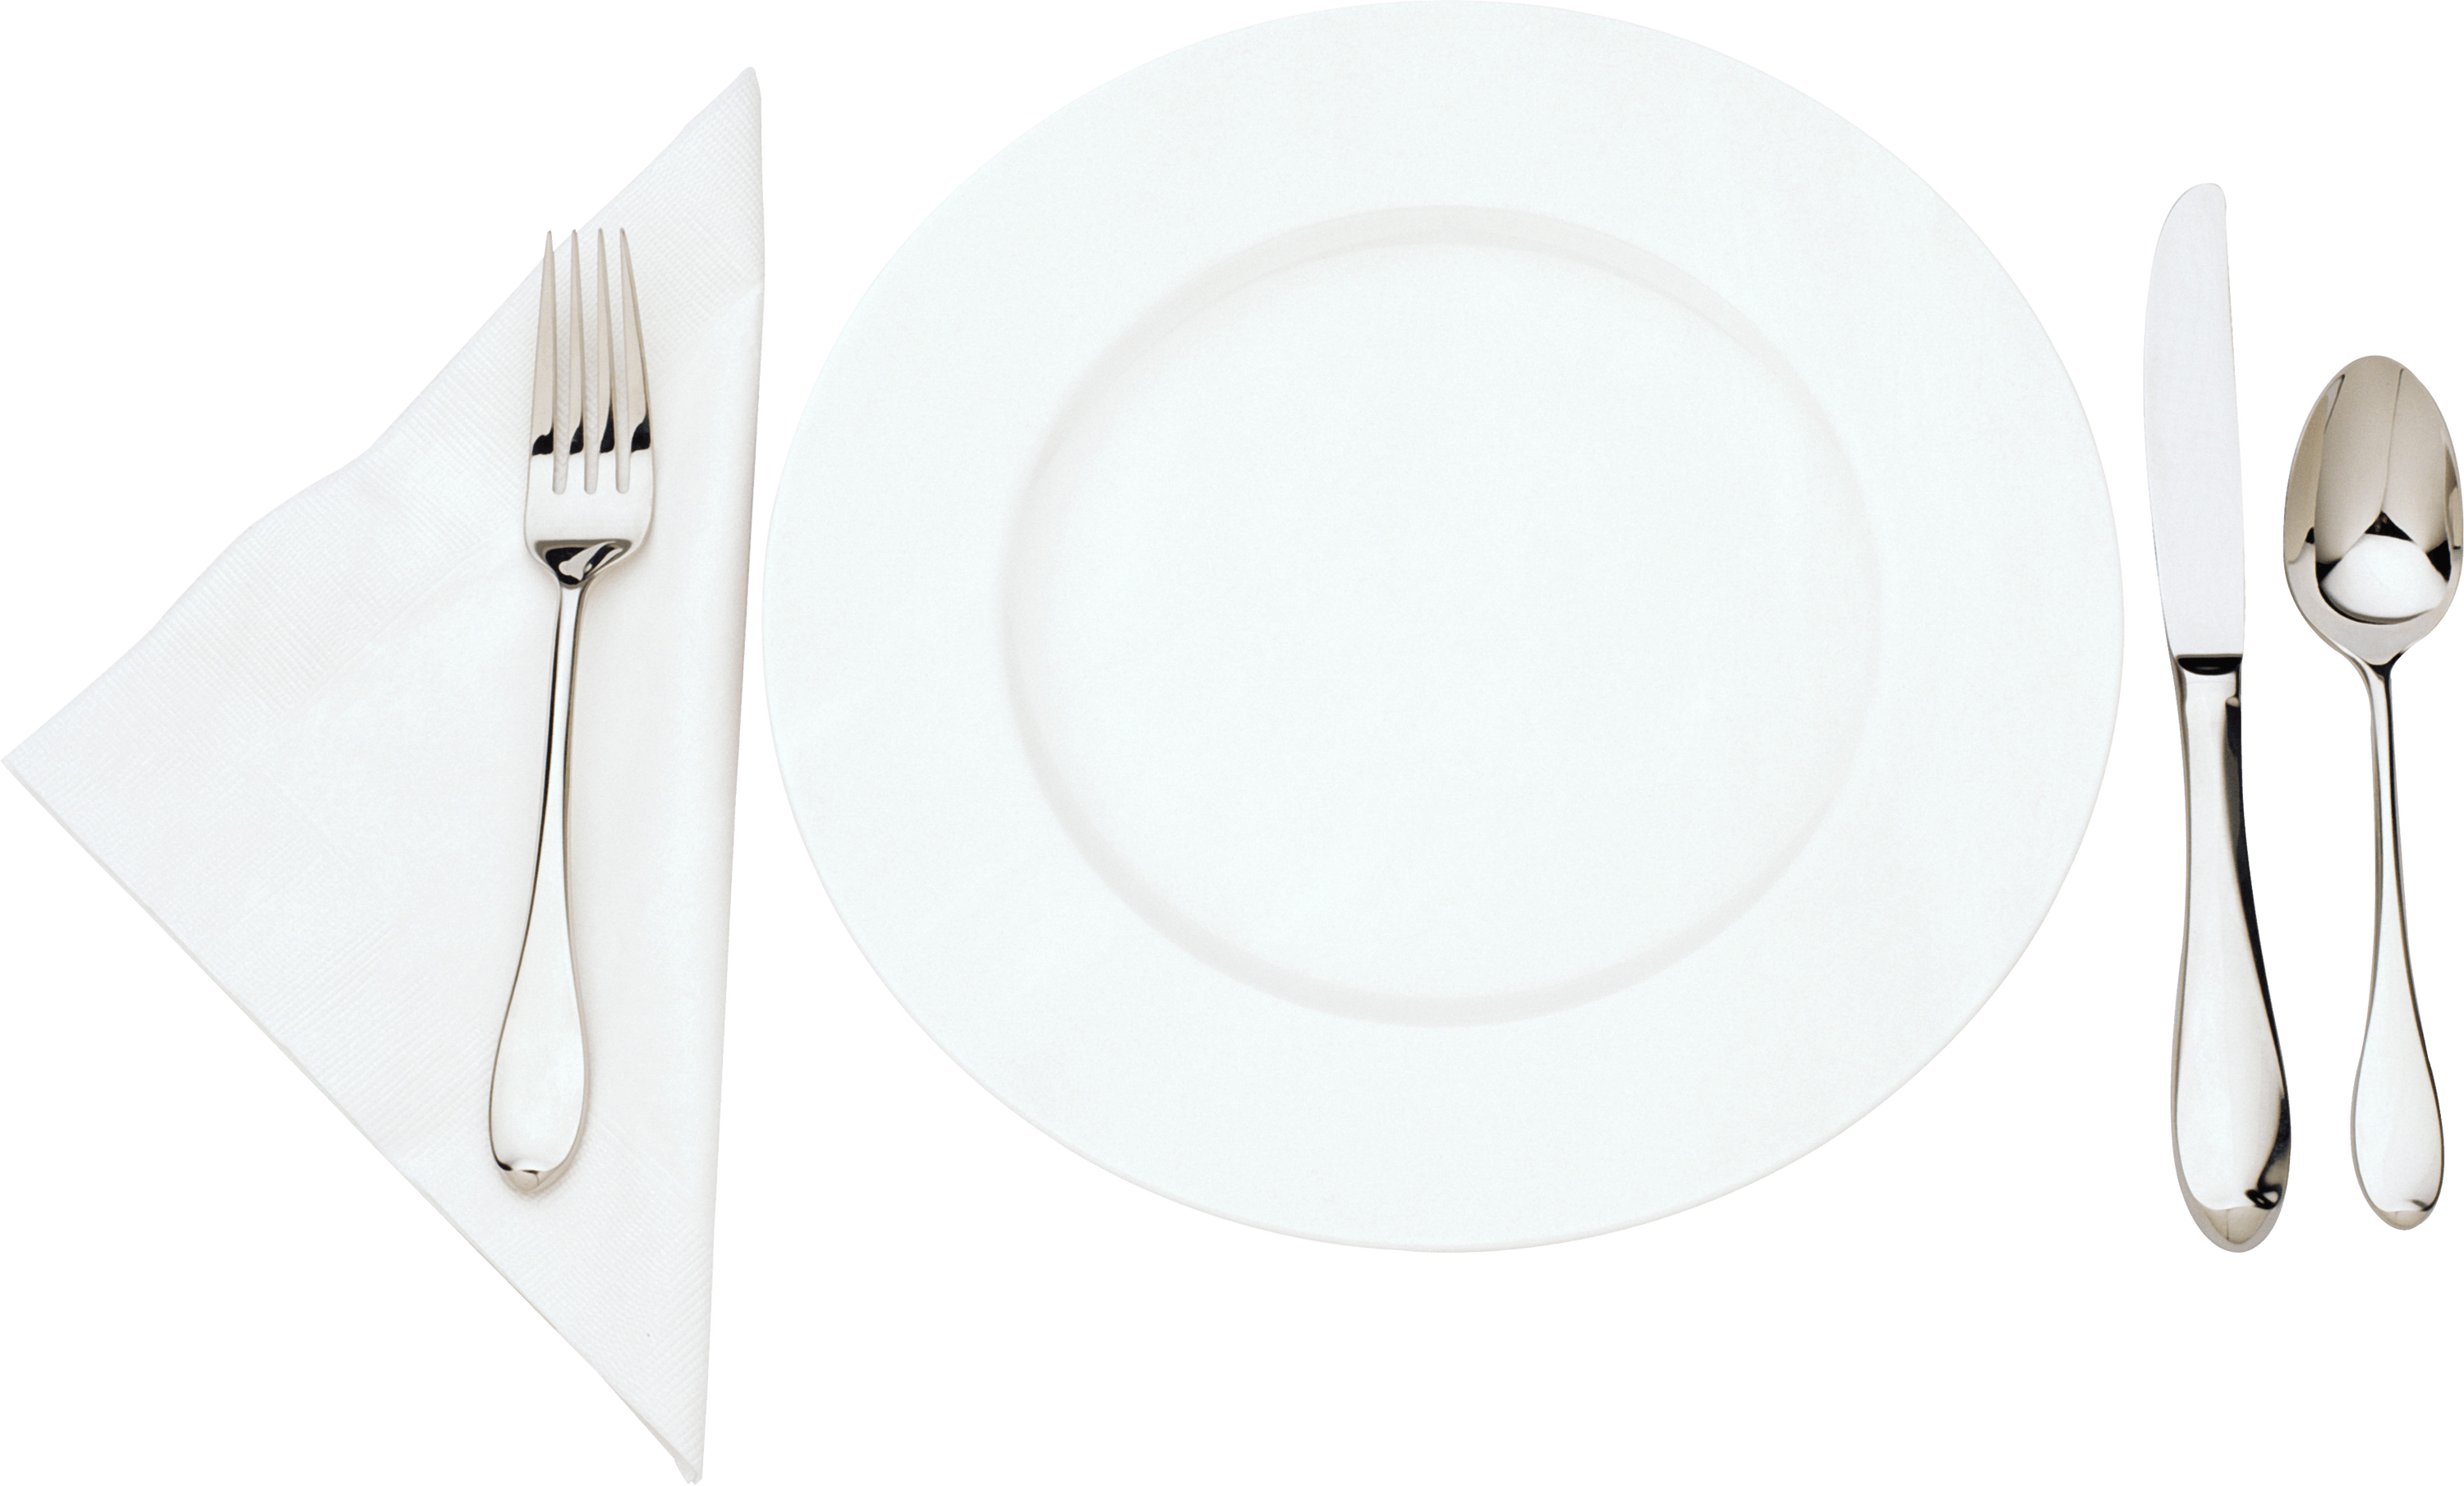 Plate Cutlery - Plate, Transparent background PNG HD thumbnail